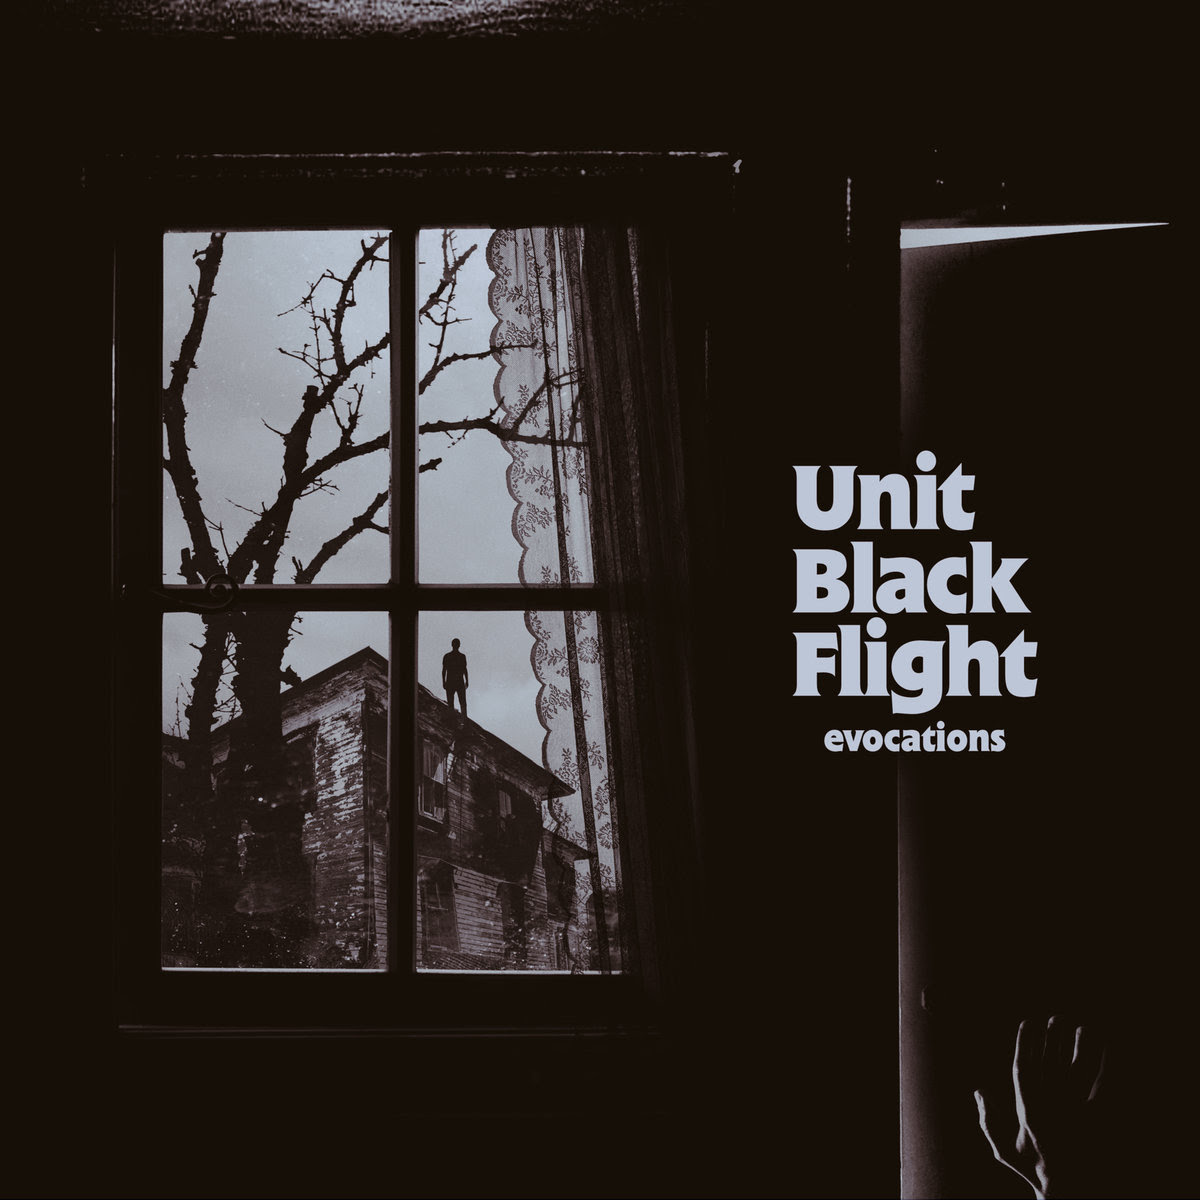 Unit Black Flight: Evocations